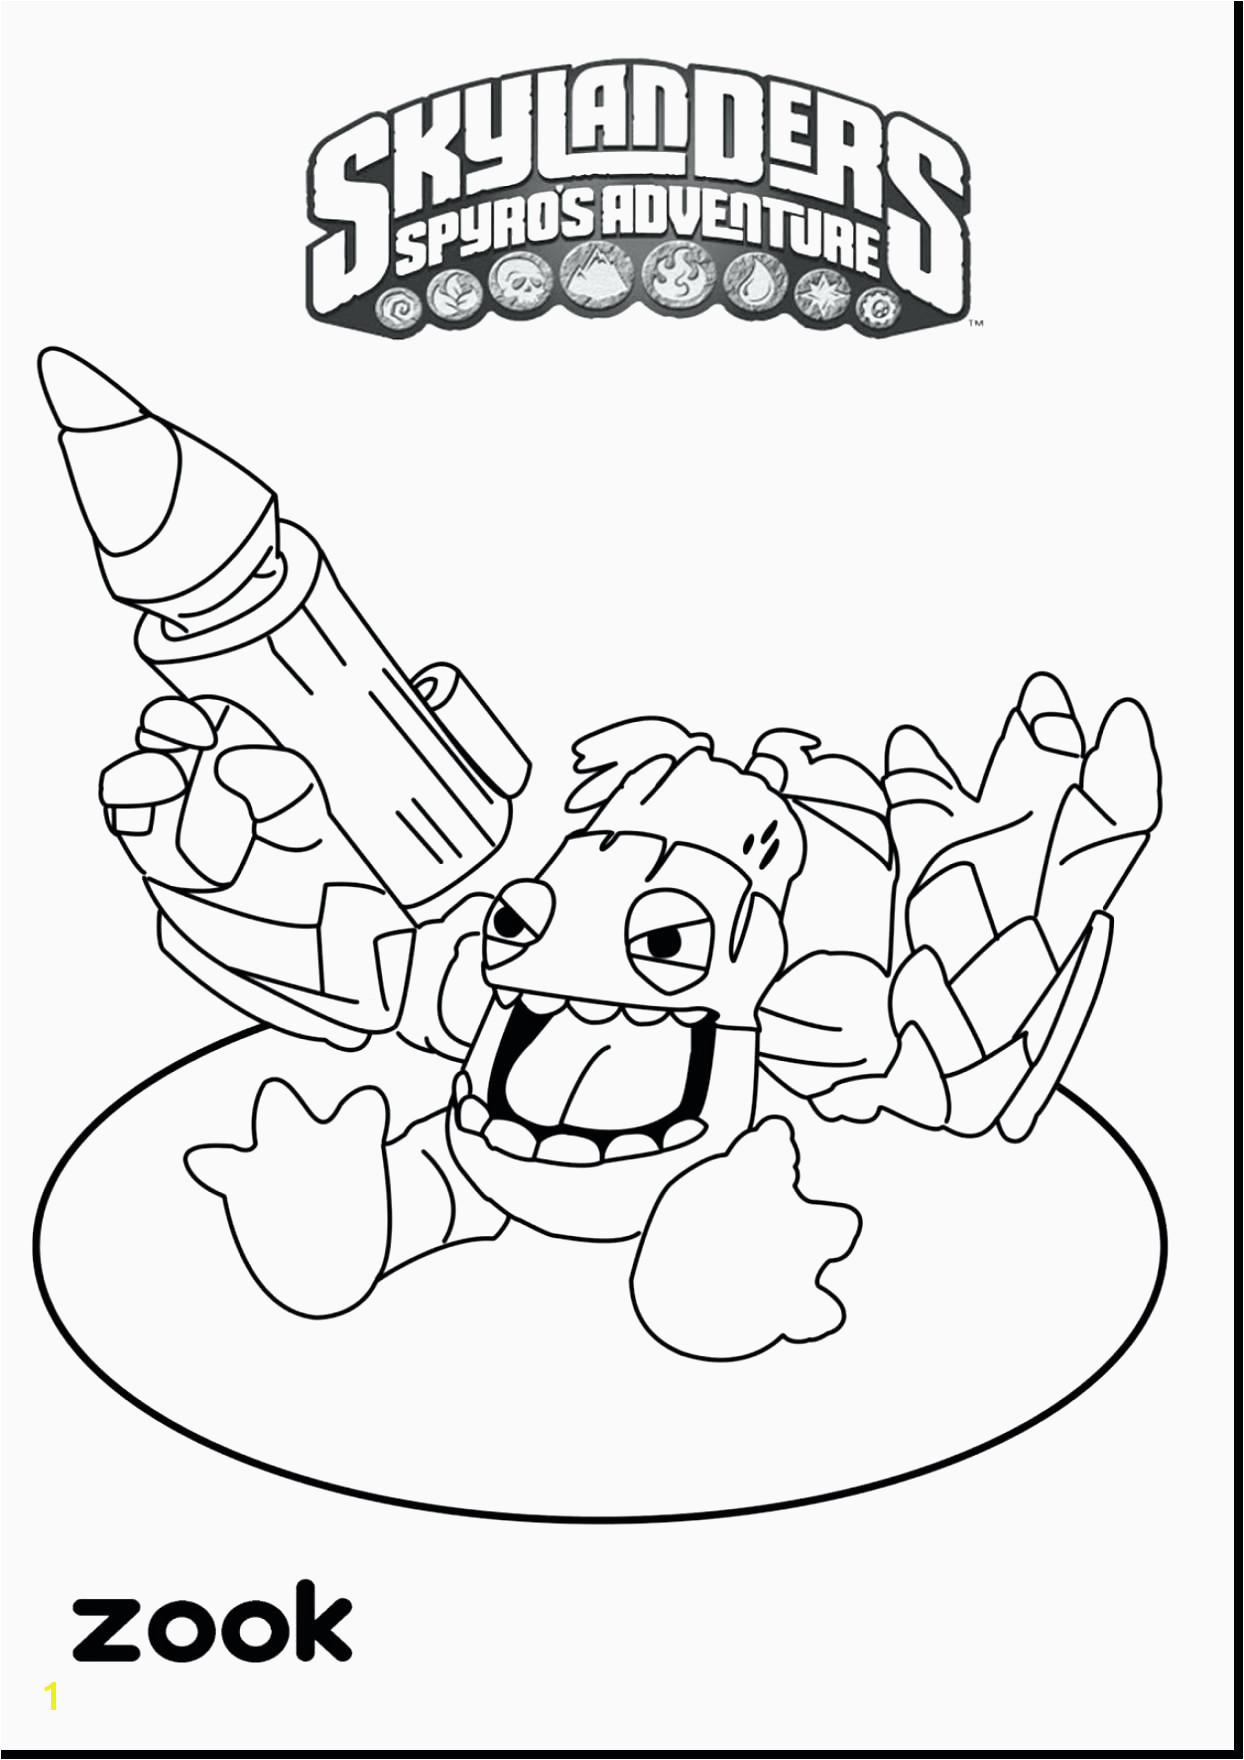 Janet Jackson Coloring Pages Cute Panda Coloring Pages Coloring Pages Coloring Pages